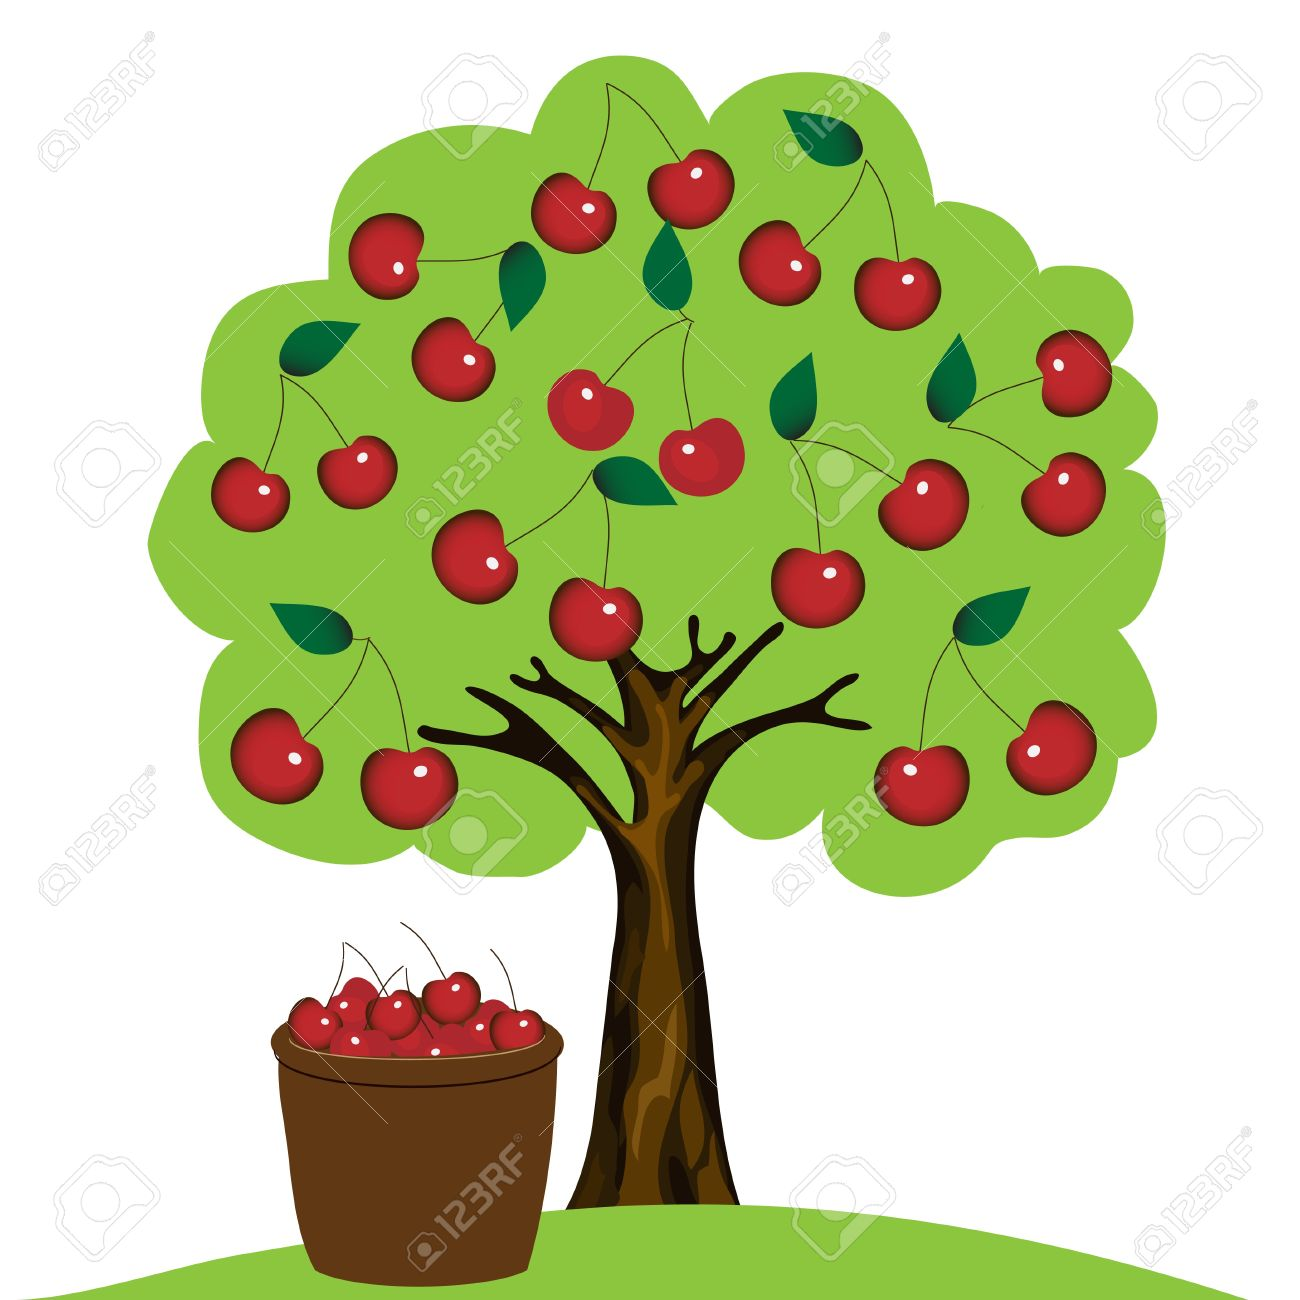 Cherry Tree clipart Collection cherry Cherry clipart Stylized